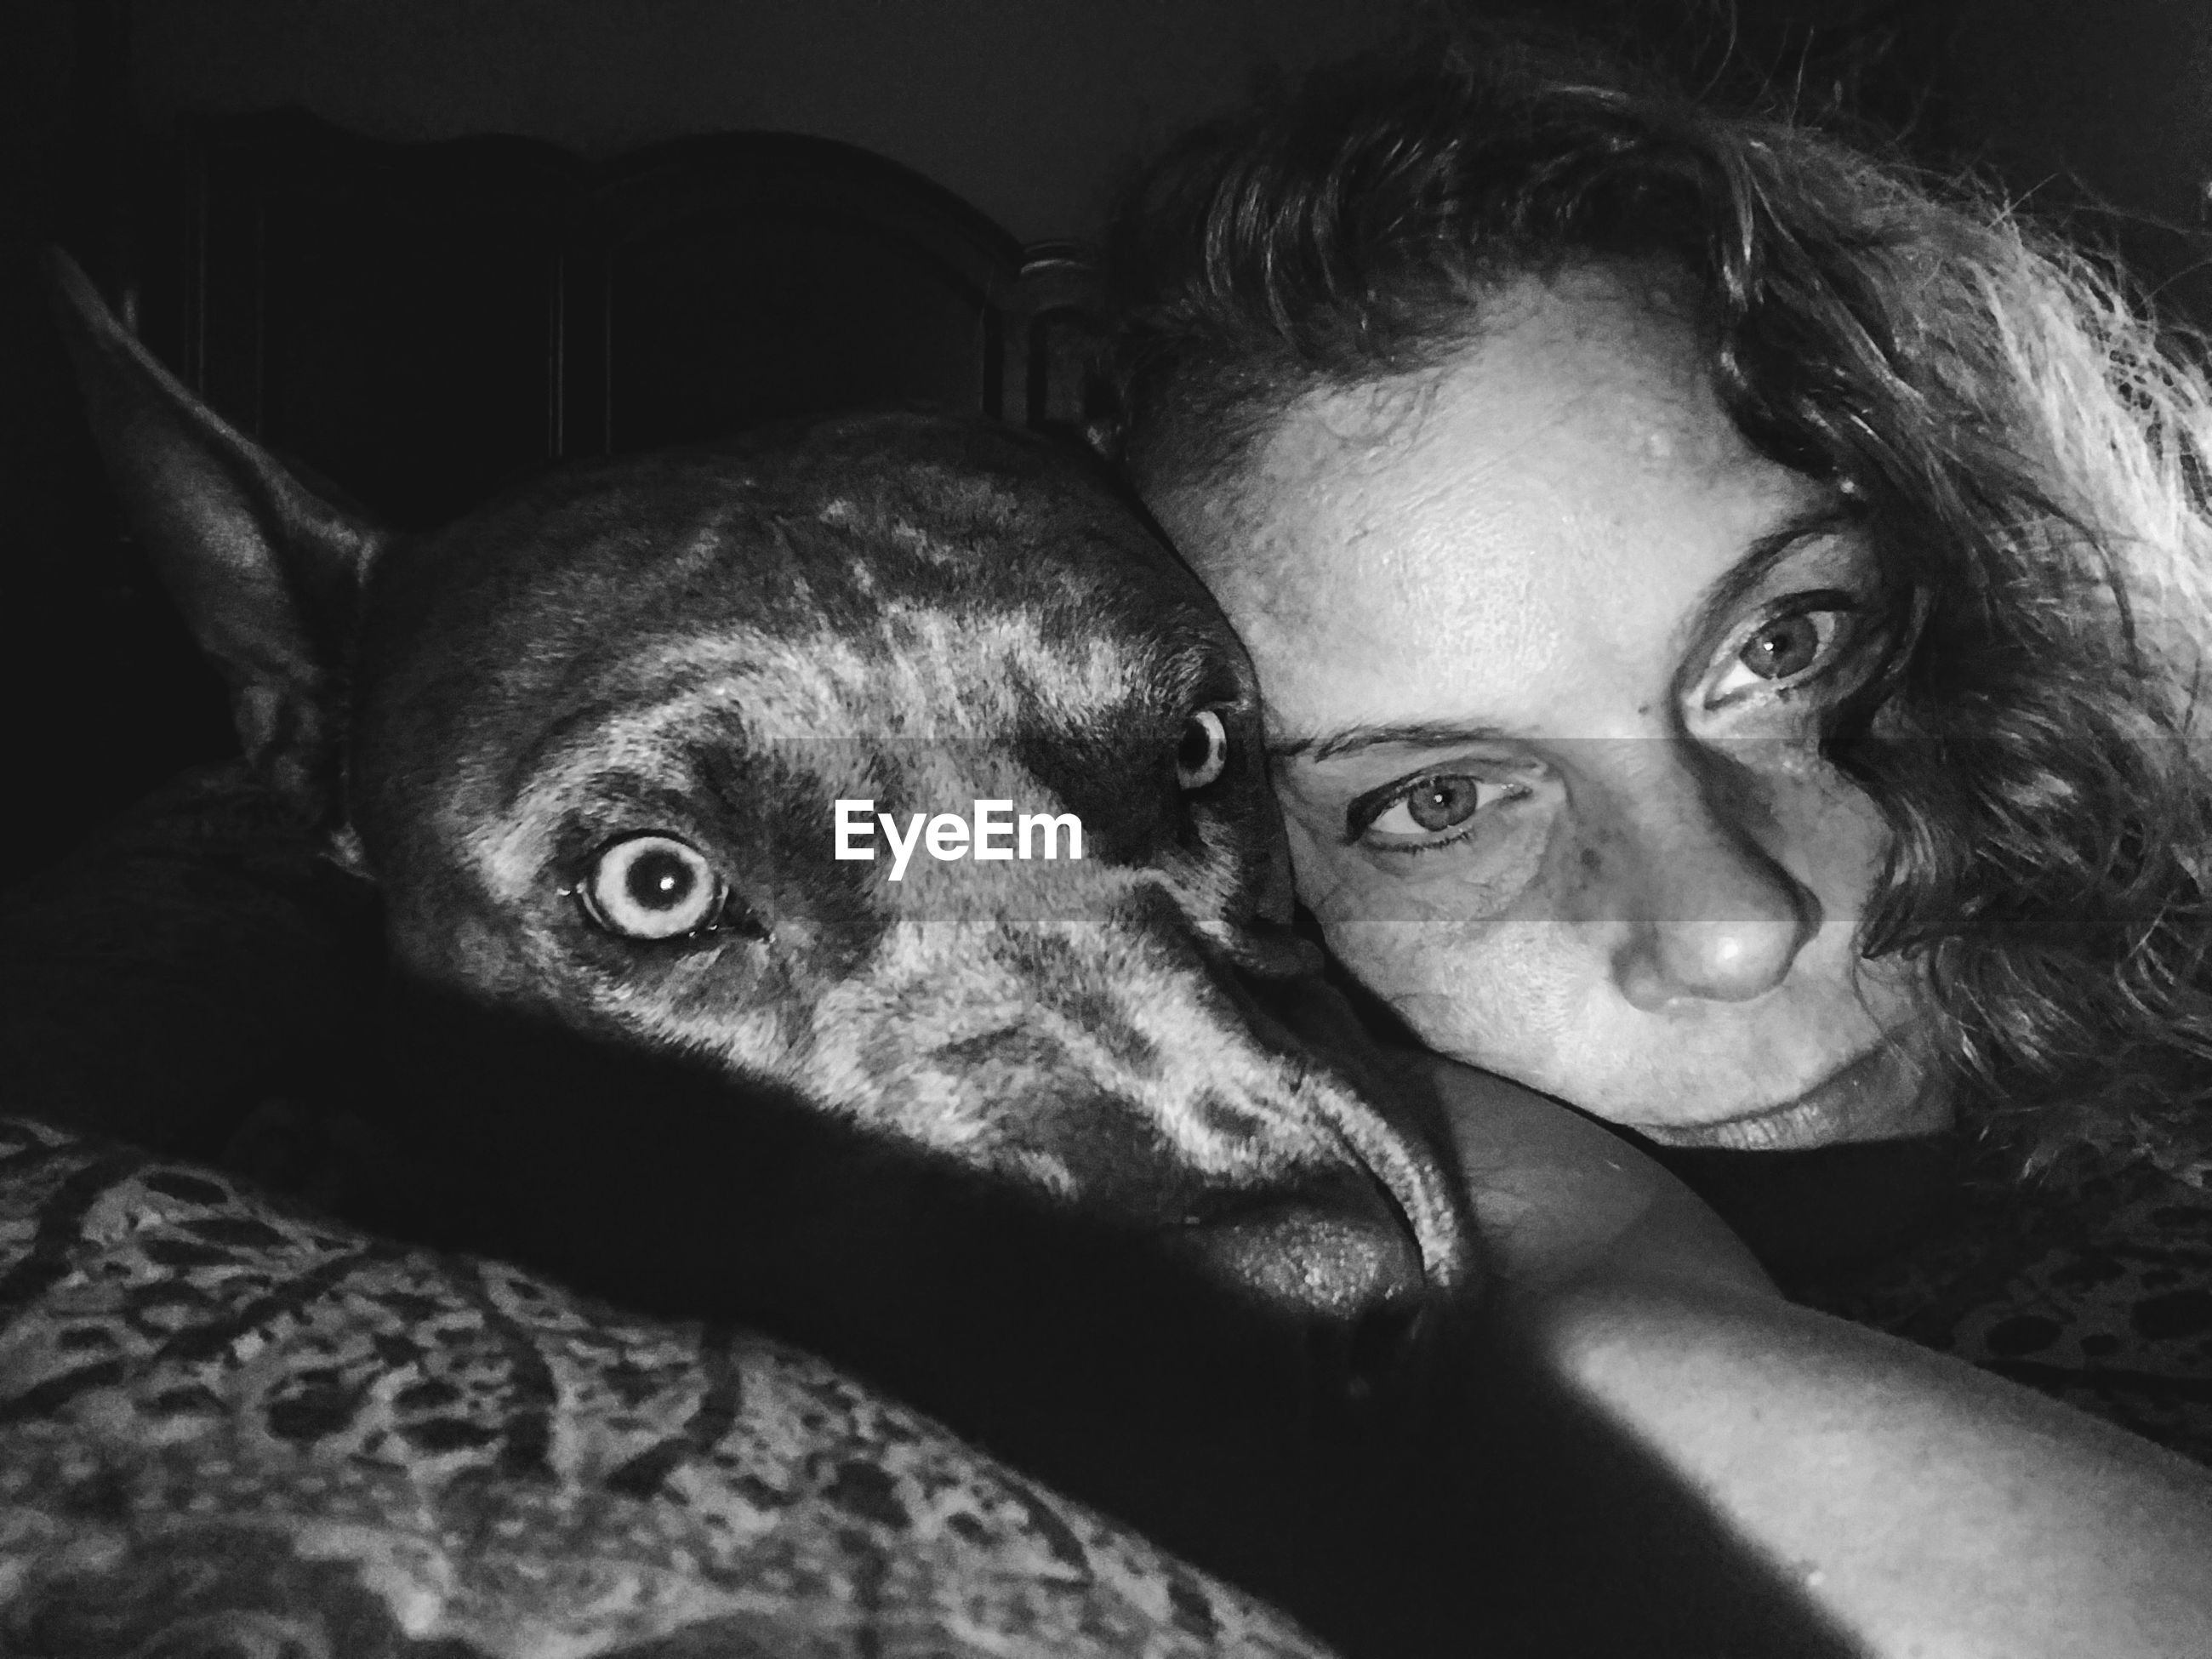 Portrait of woman with dog in darkroom